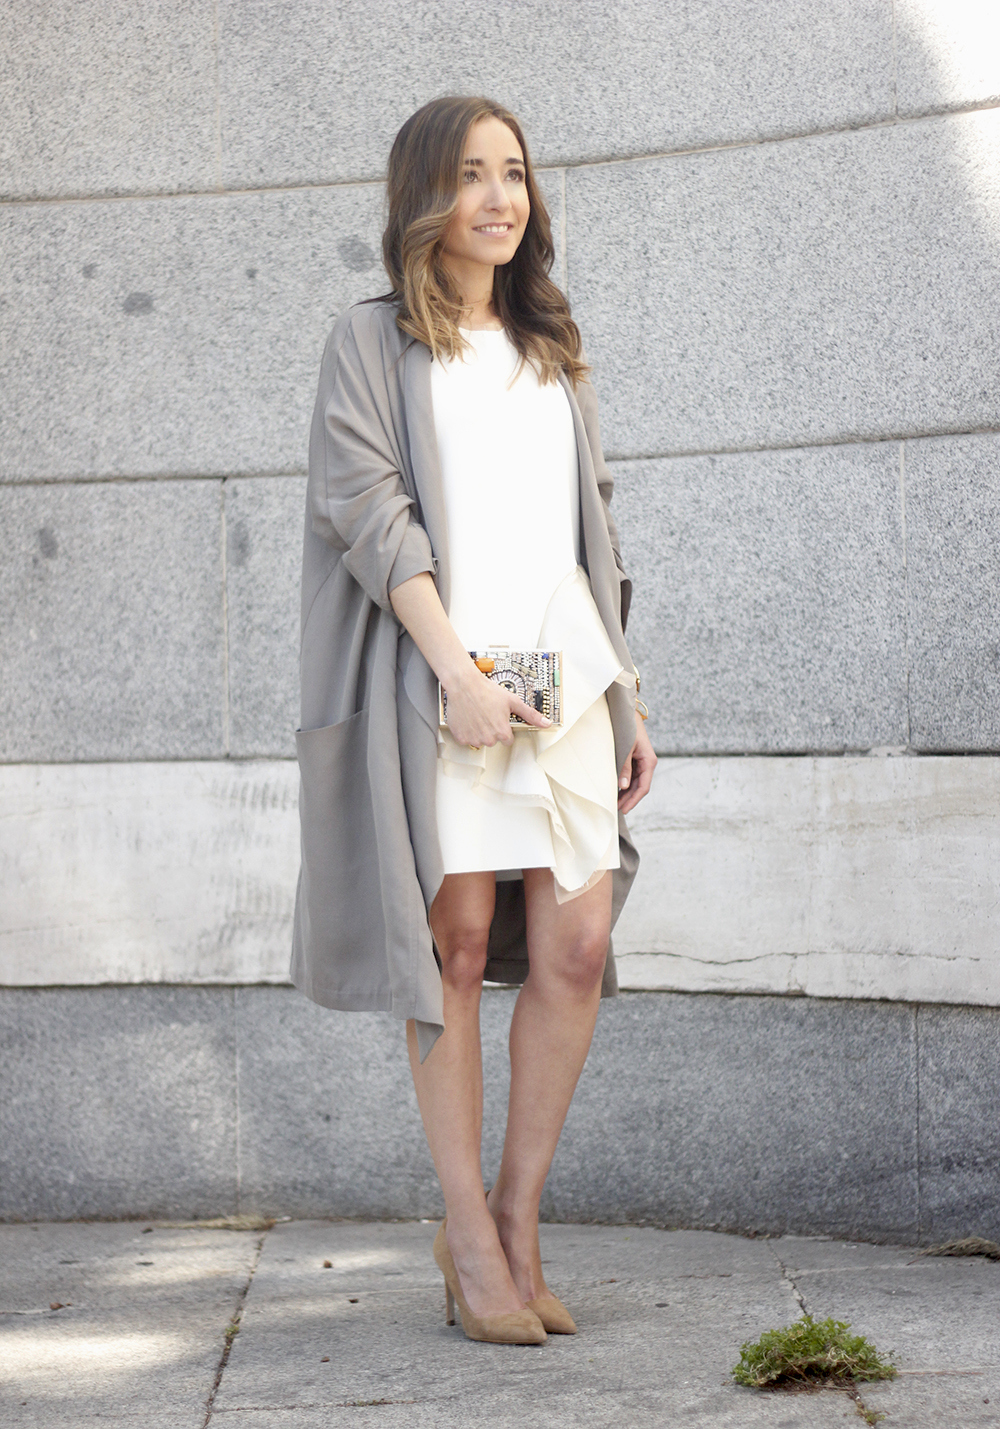 White dress with ruffles trench nude heels clutch accessories outfit style03